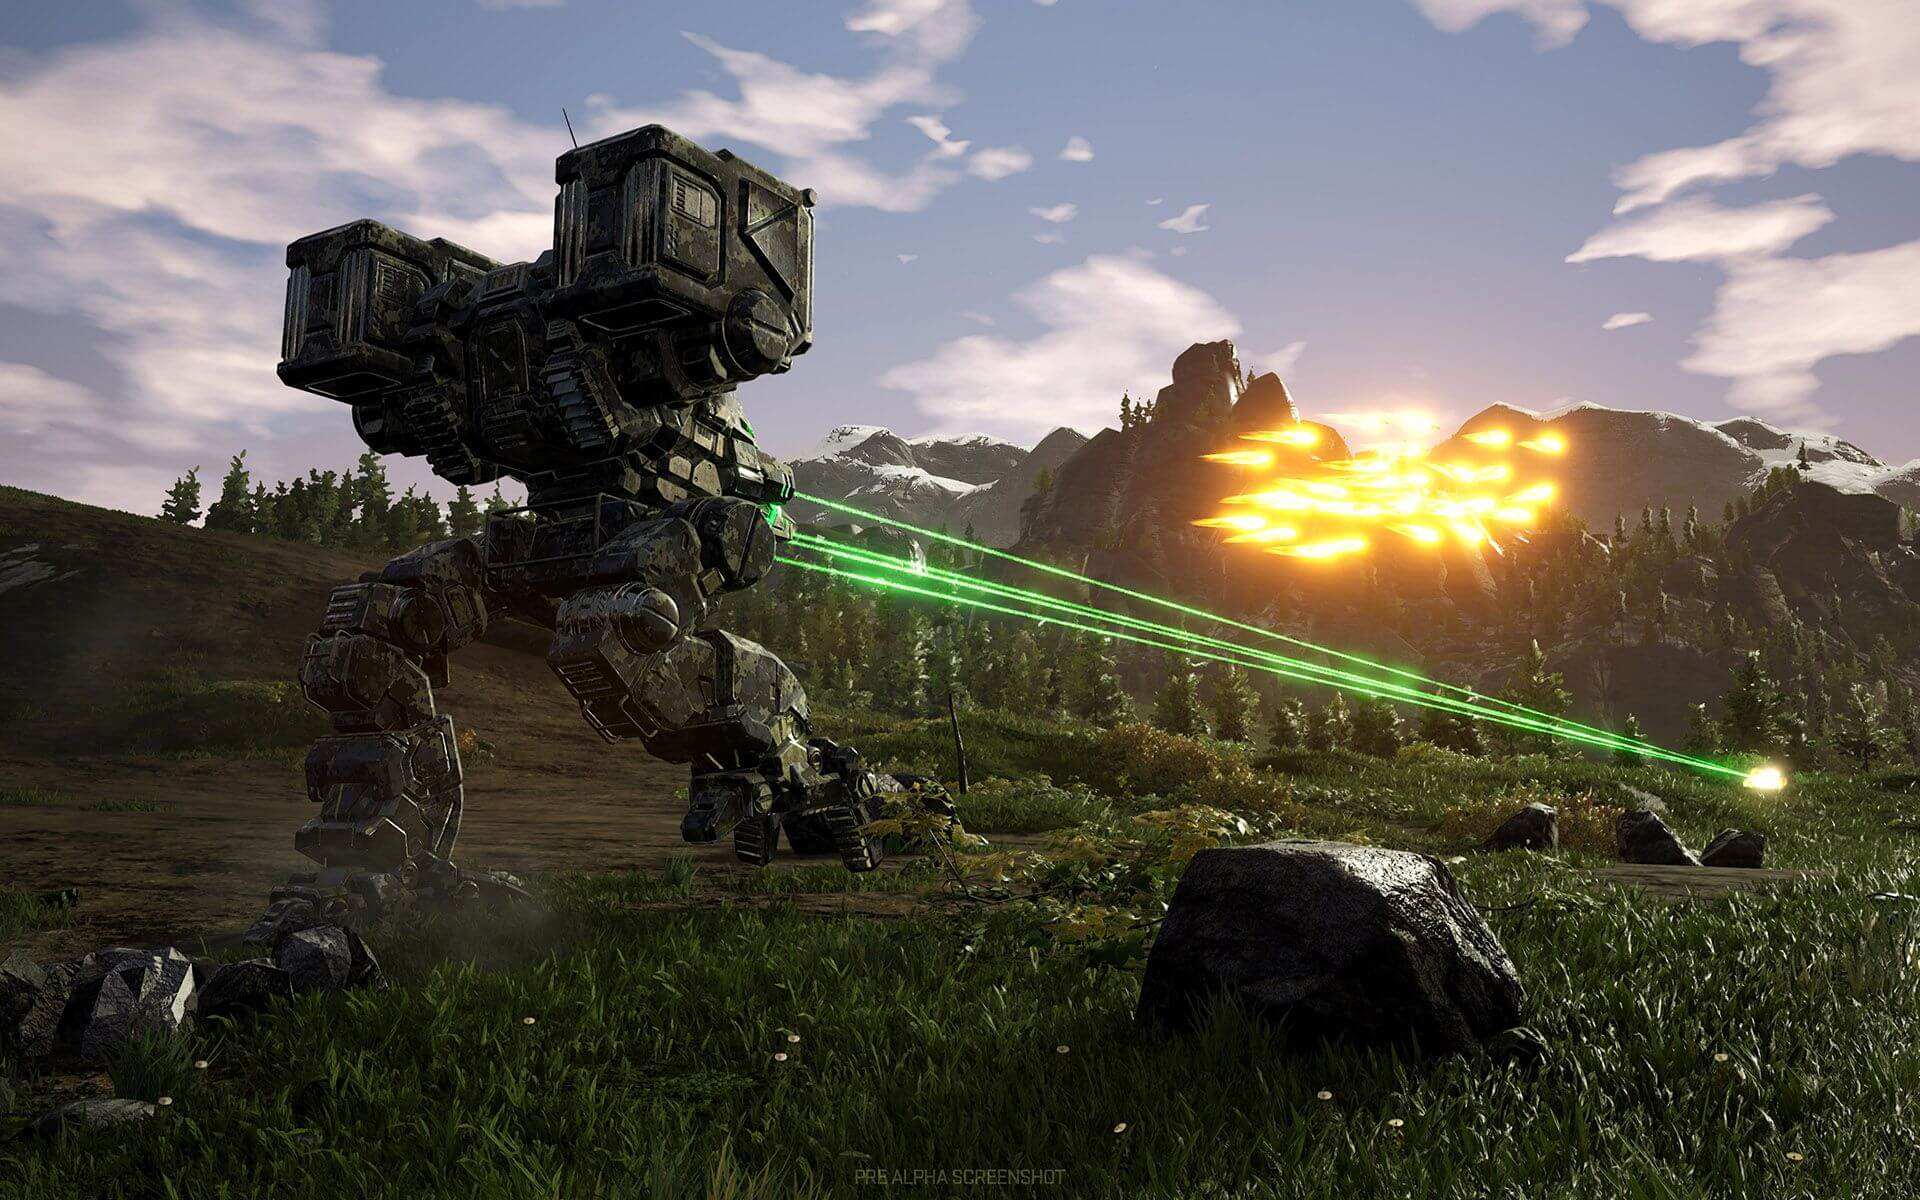 DeveloperInterview_-Mechwarrior_5_005.jpg